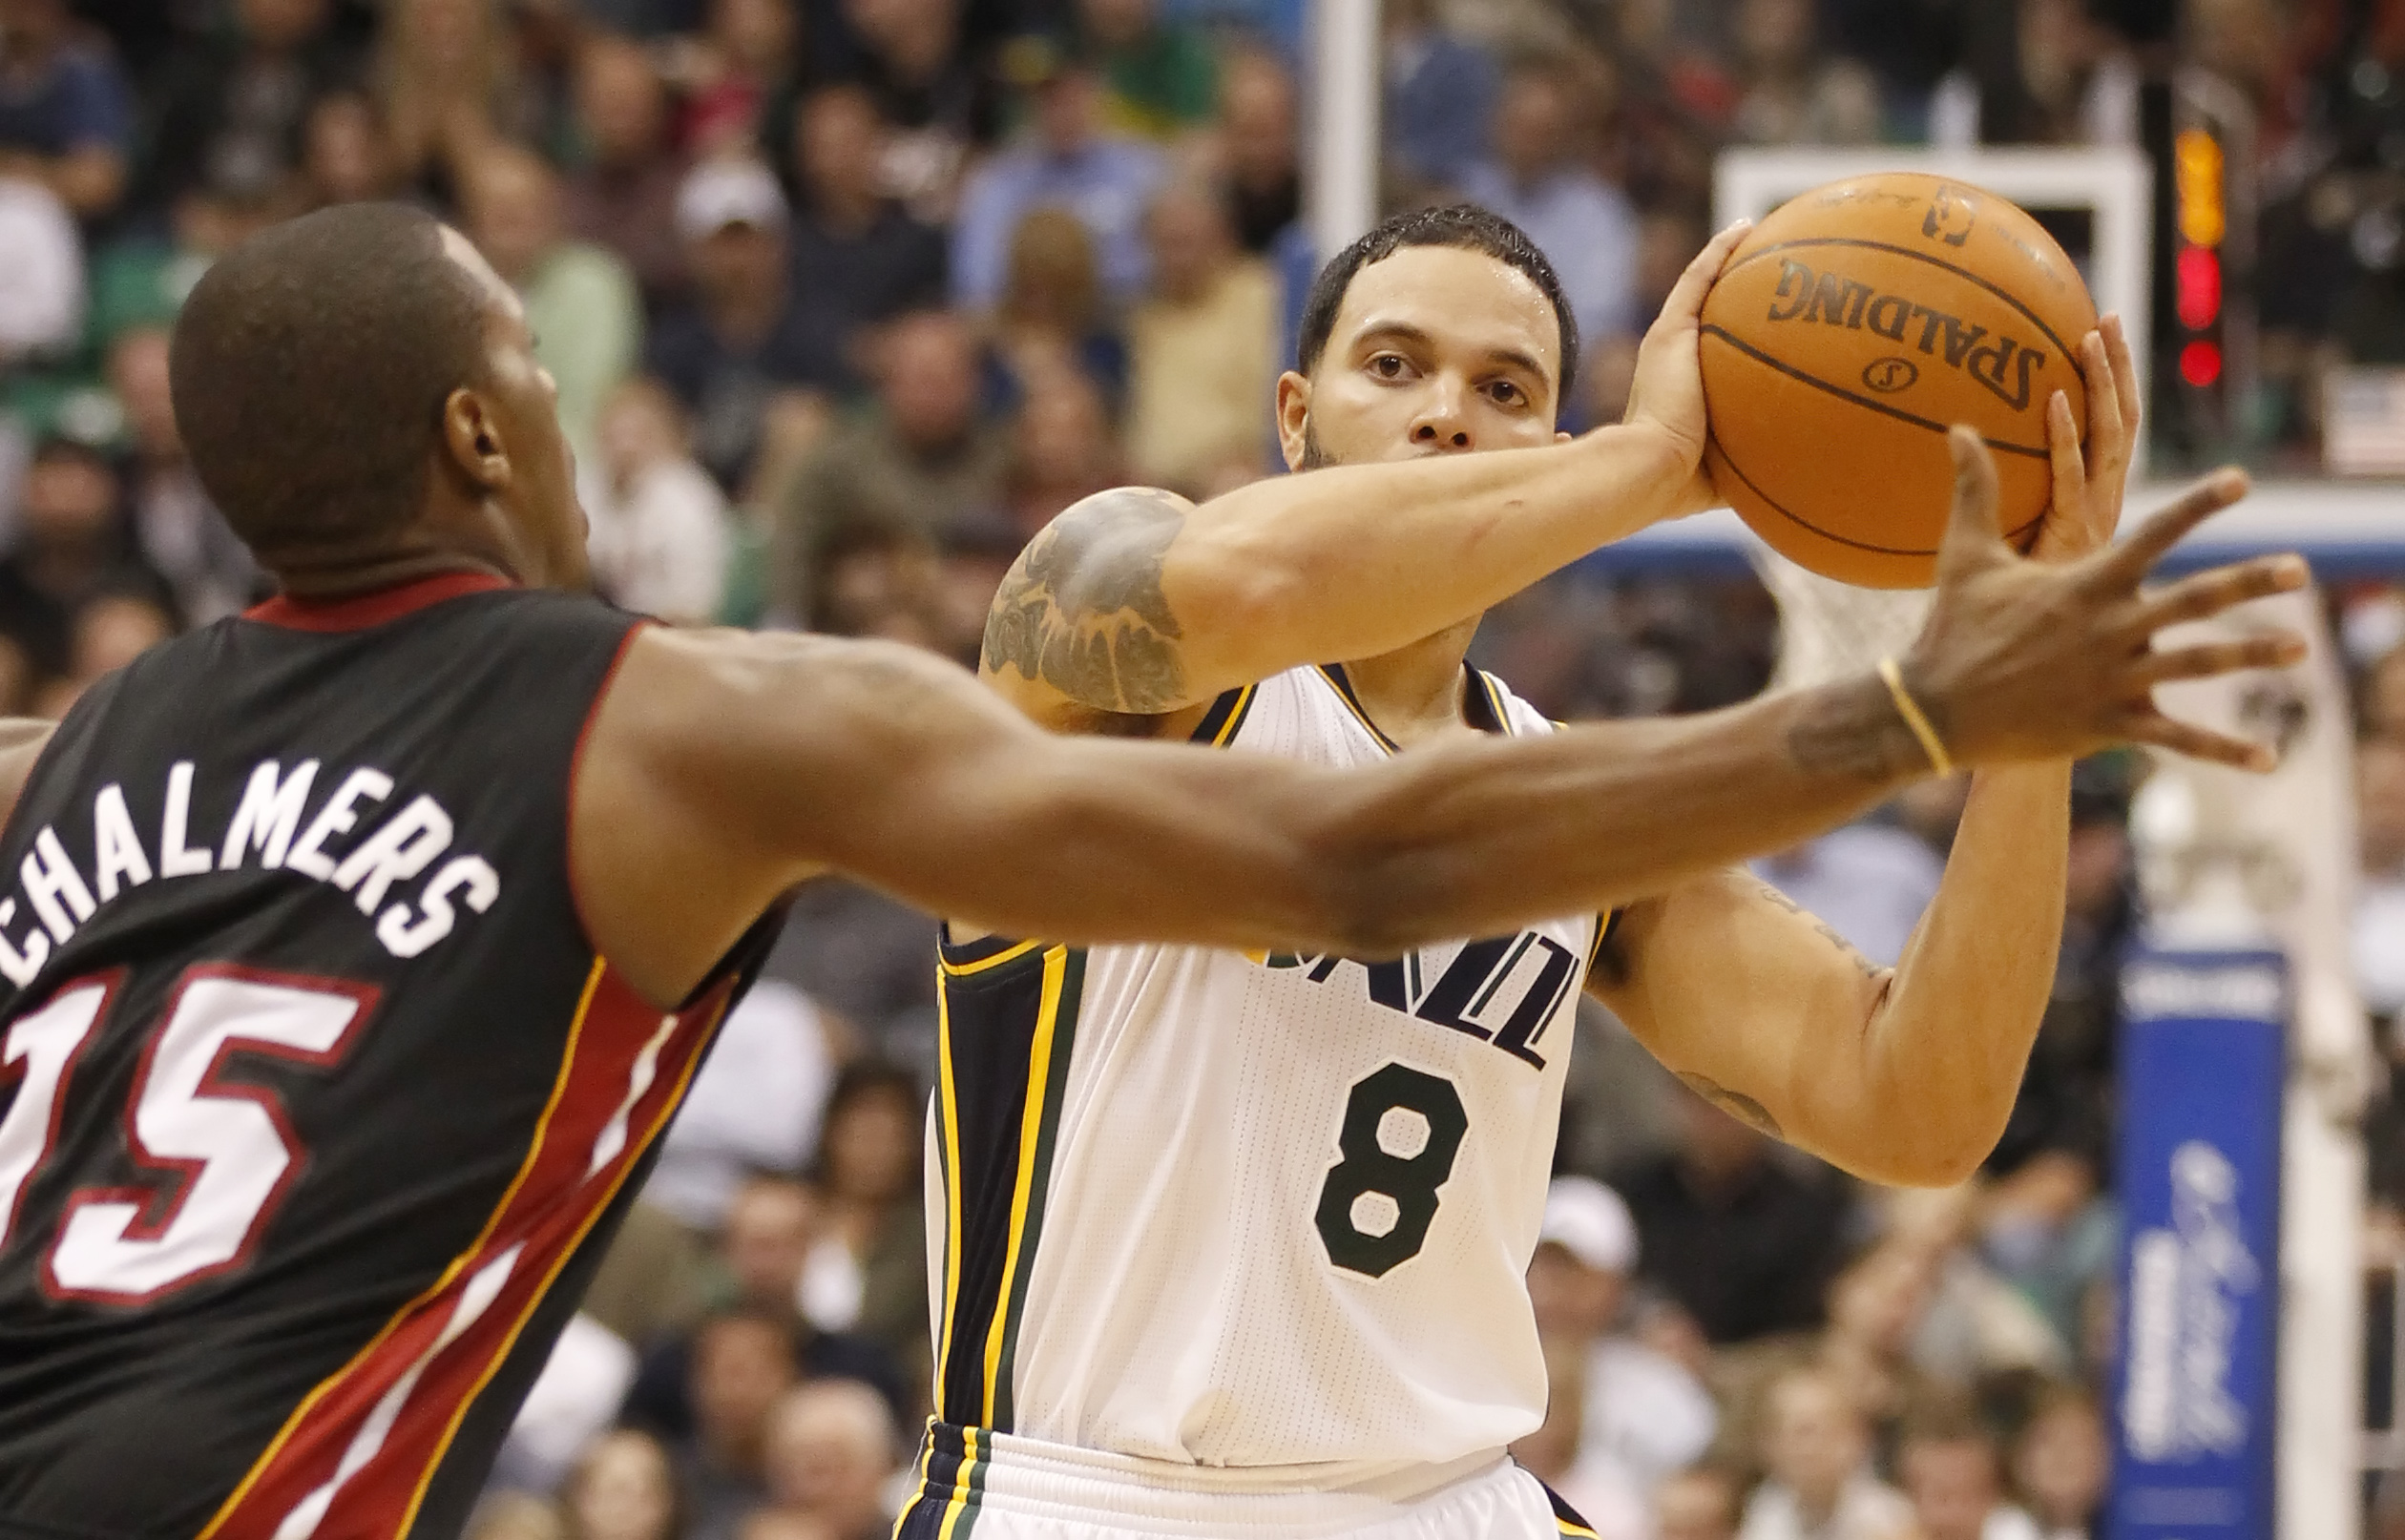 SALT LAKE CITY, UT - DECEMBER 8:  Deron Williams #8 of the Utah Jazz is pressured by Marion Chambers #15 of the Miami Heat during the second half of an NBA game December 8, 2010 at Energy Solutions Arena in Salt Lake City, Utah. The Heat beat the Jazz 111